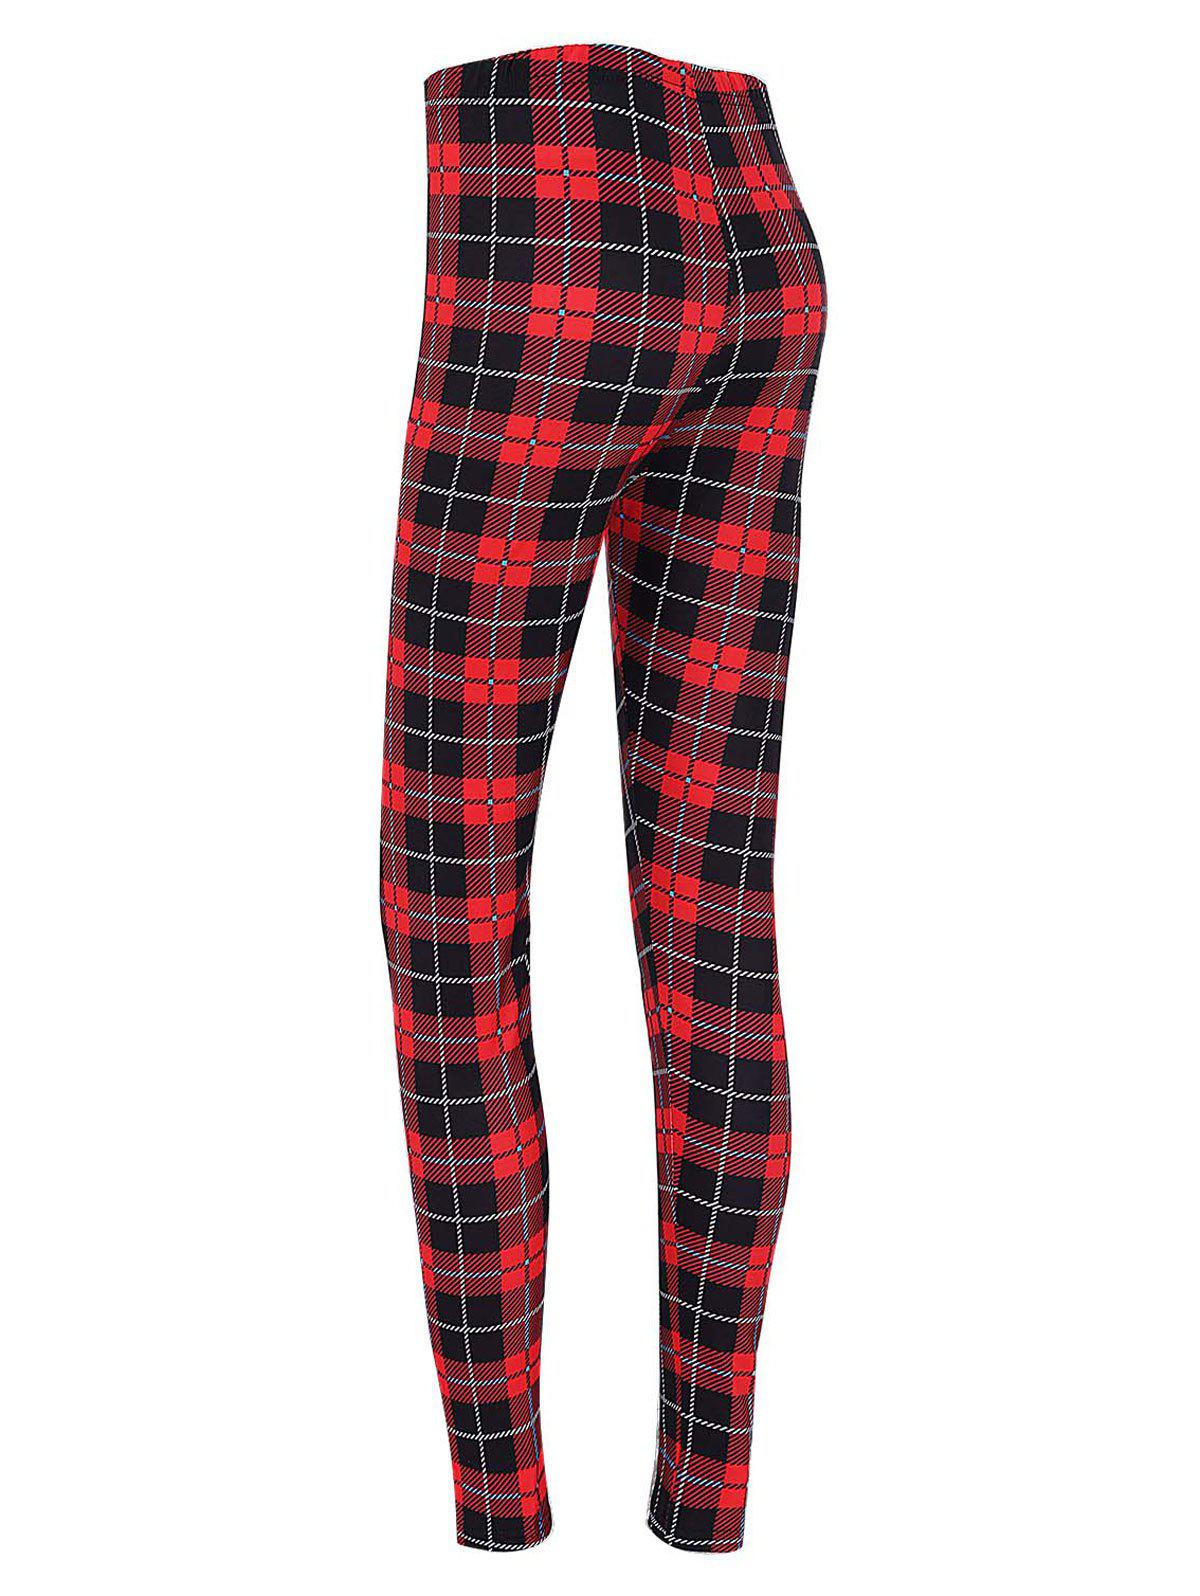 Christmas Plaid High Waisted LeggingsWOMEN<br><br>Size: L; Color: CHECKED; Style: Fashion; Material: Polyester,Spandex; Waist Type: High; Pattern Type: Print; Weight: 0.2200kg; Package Contents: 1 x Leggings;